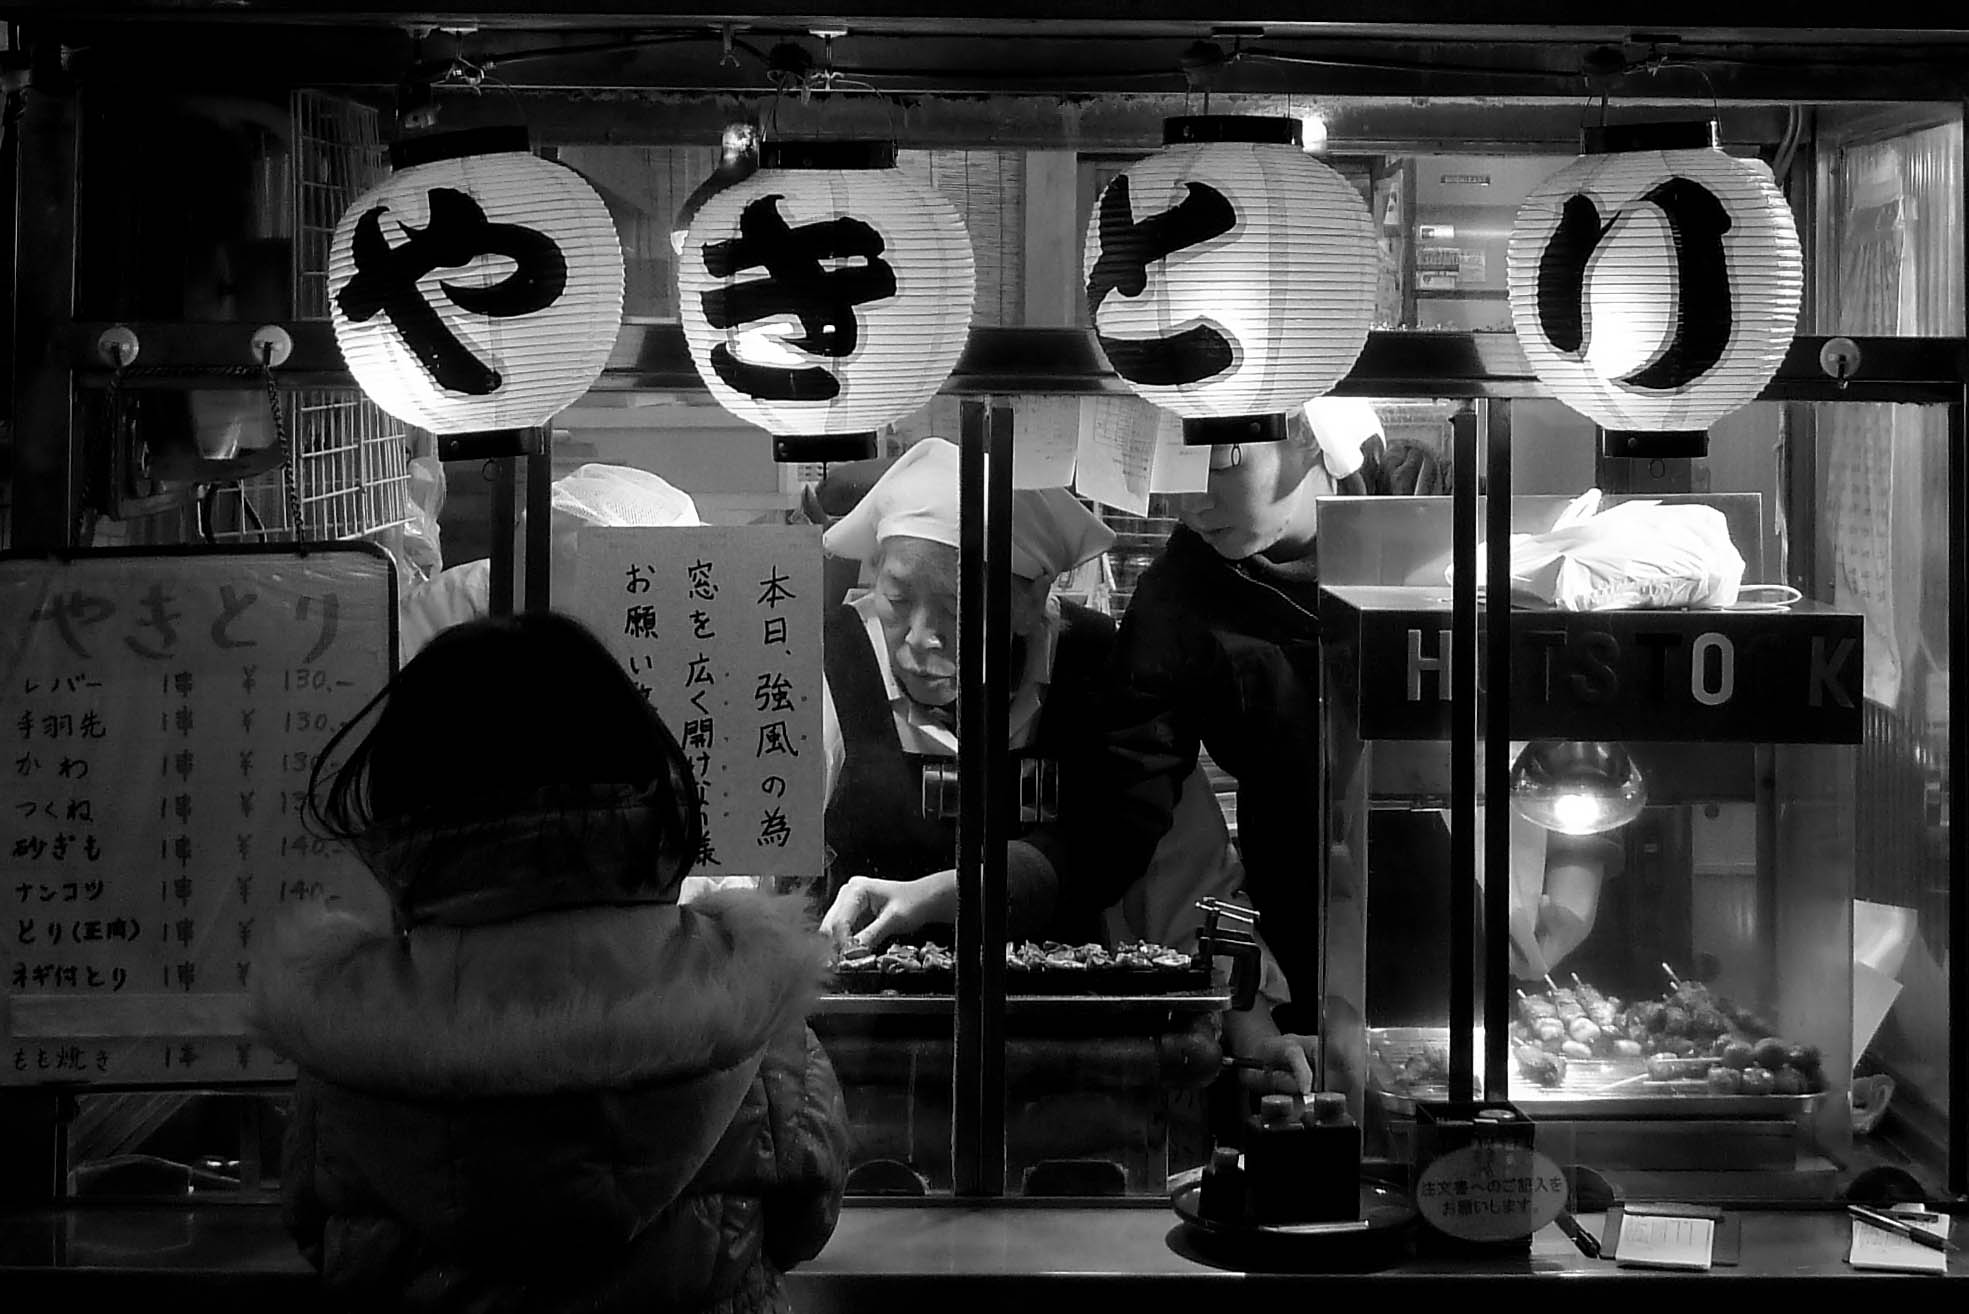 The yakitori vendor